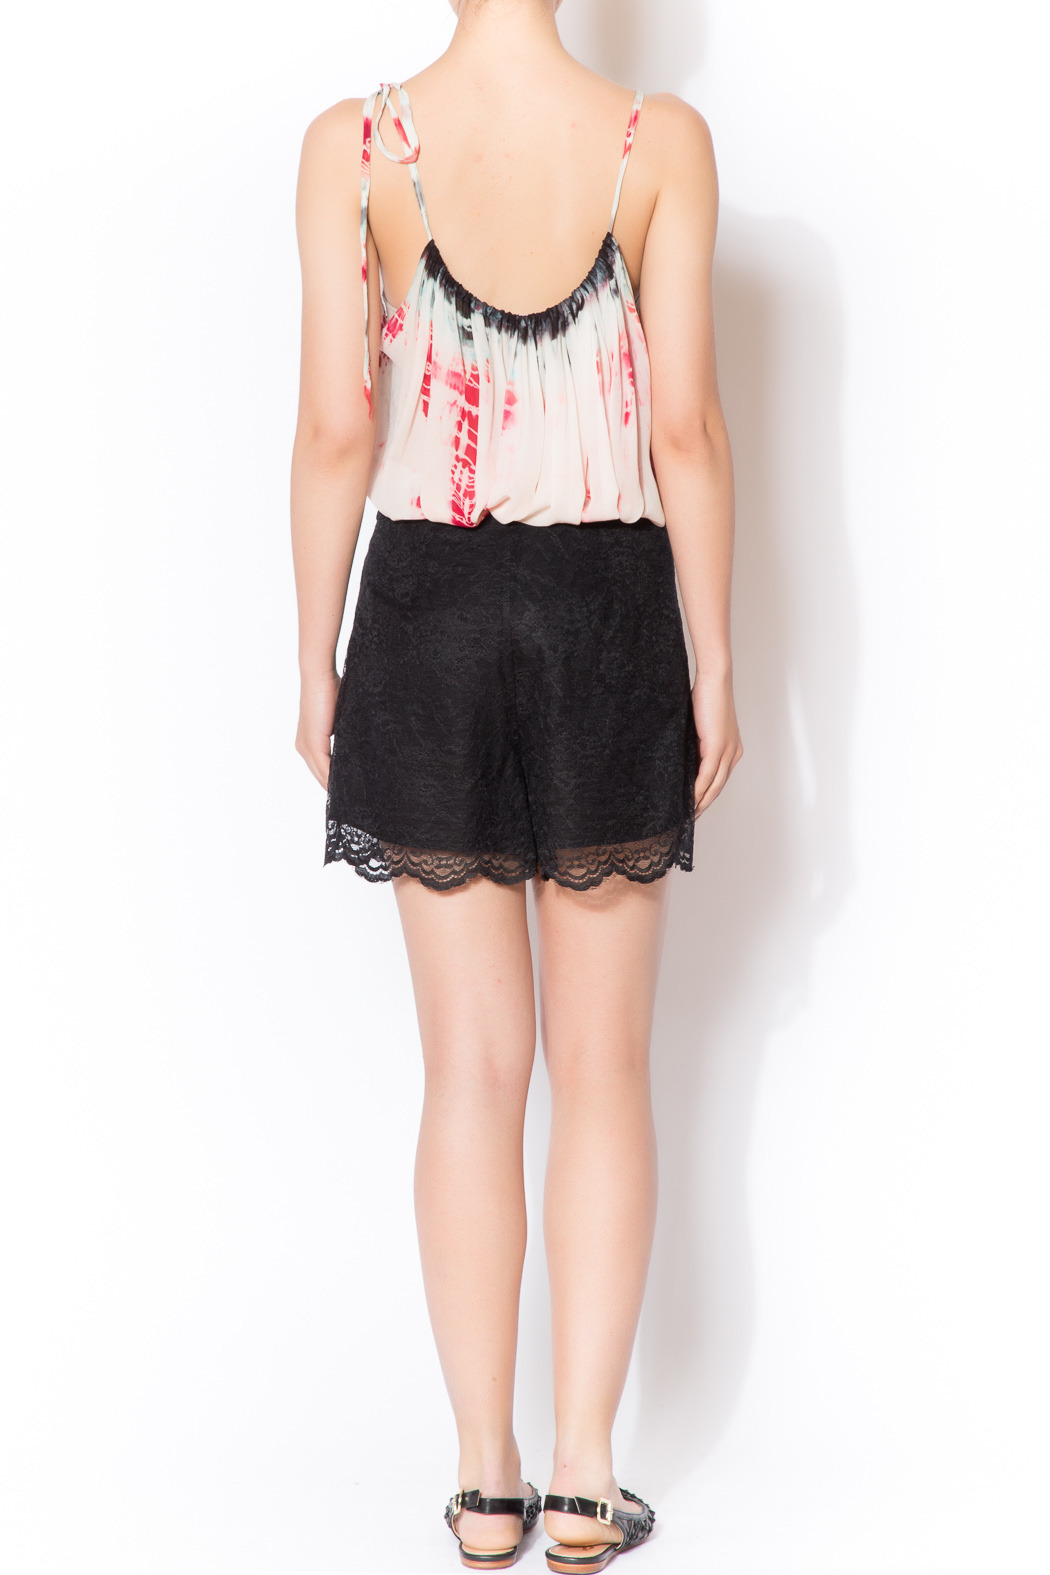 CCH Collection Lace Black Shorts - Side Cropped Image